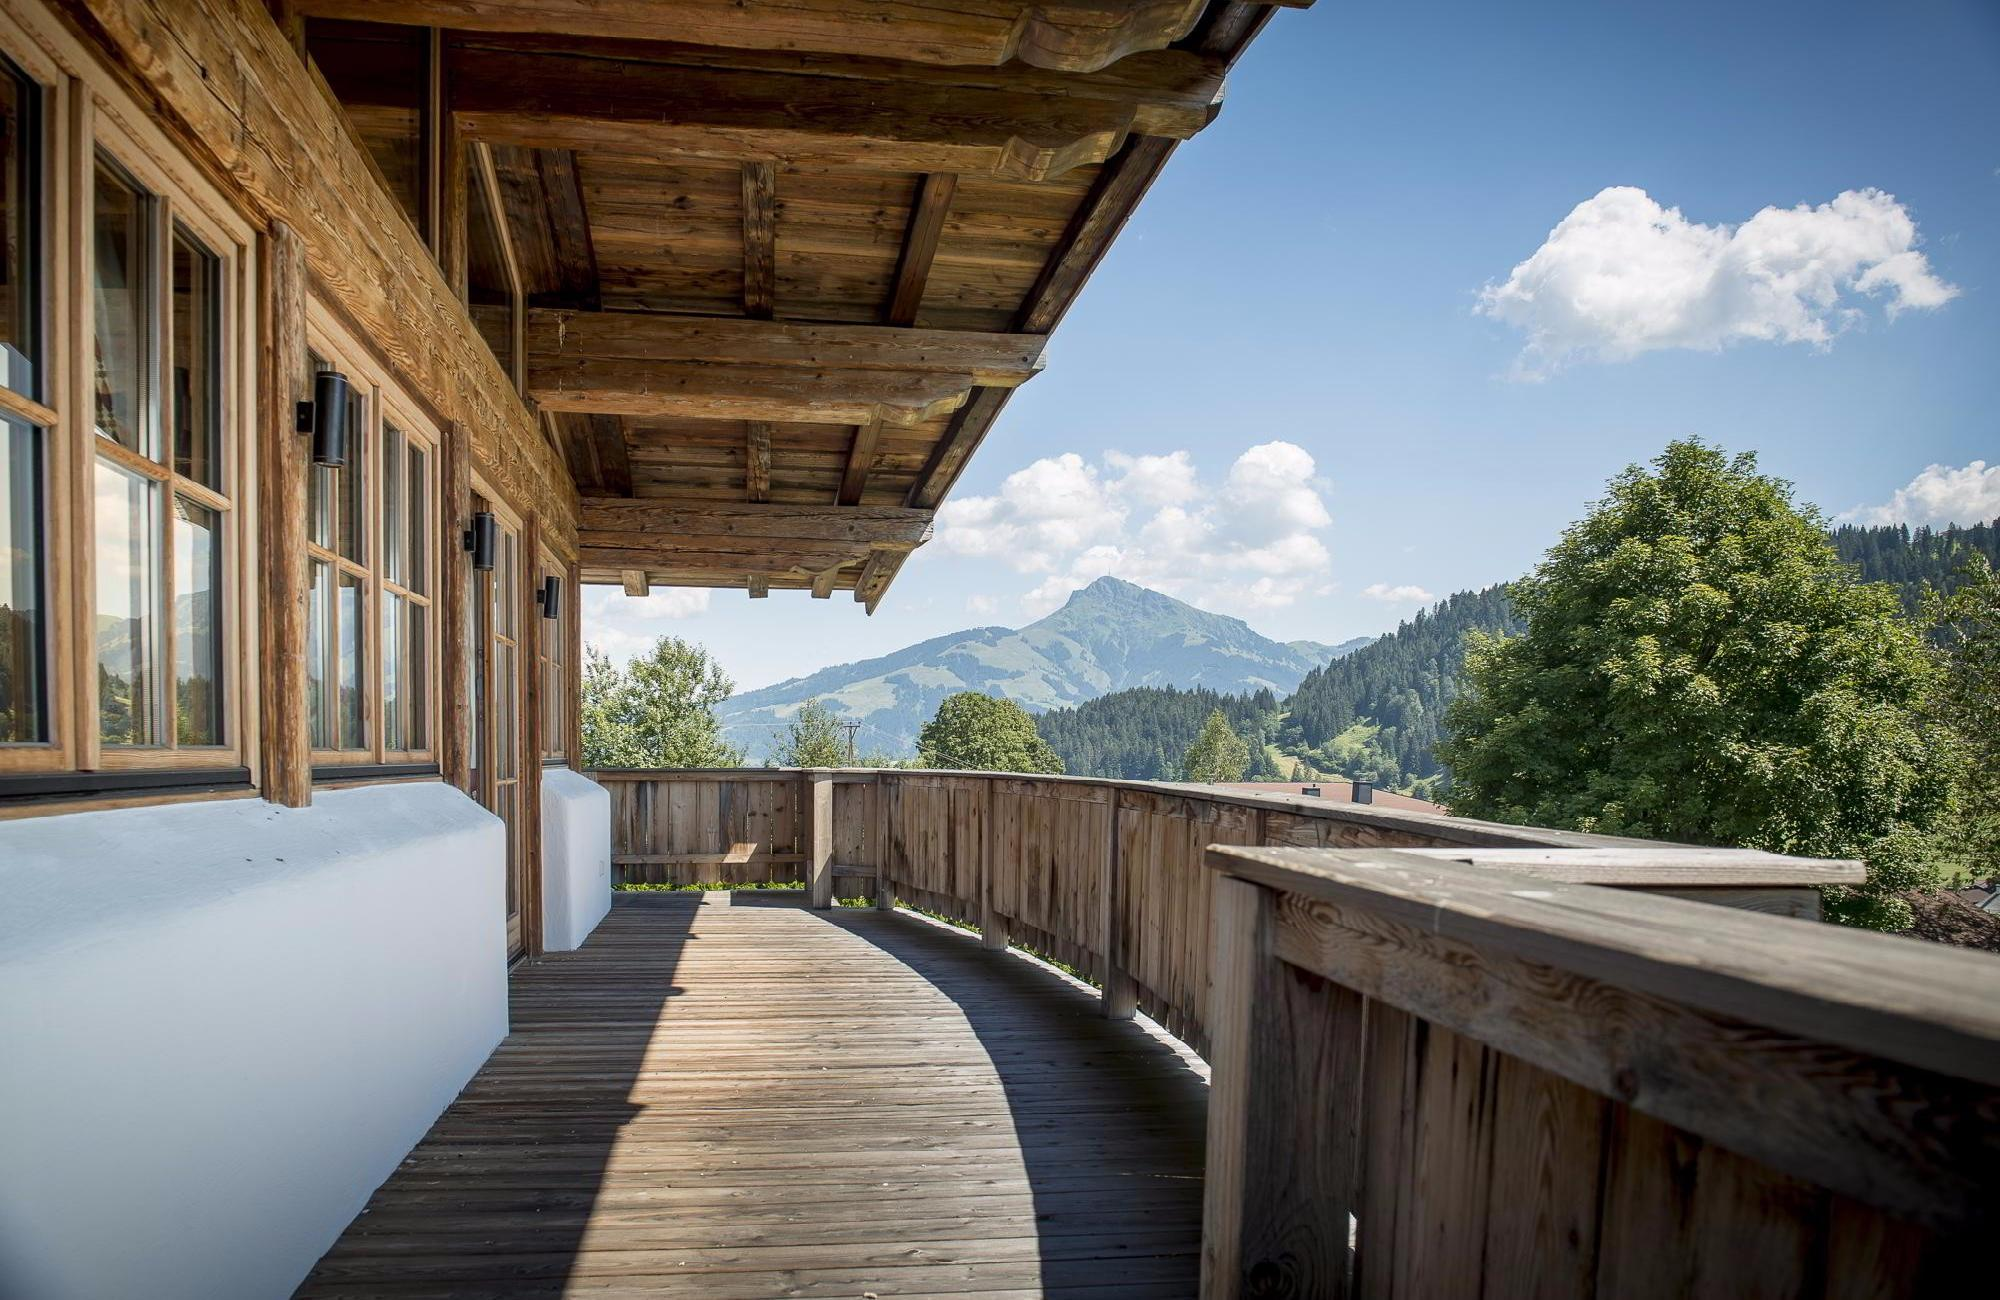 Immobilien - Luxus-Landhaus in Sonnenlage von Going, Going am Wilden Kaiser